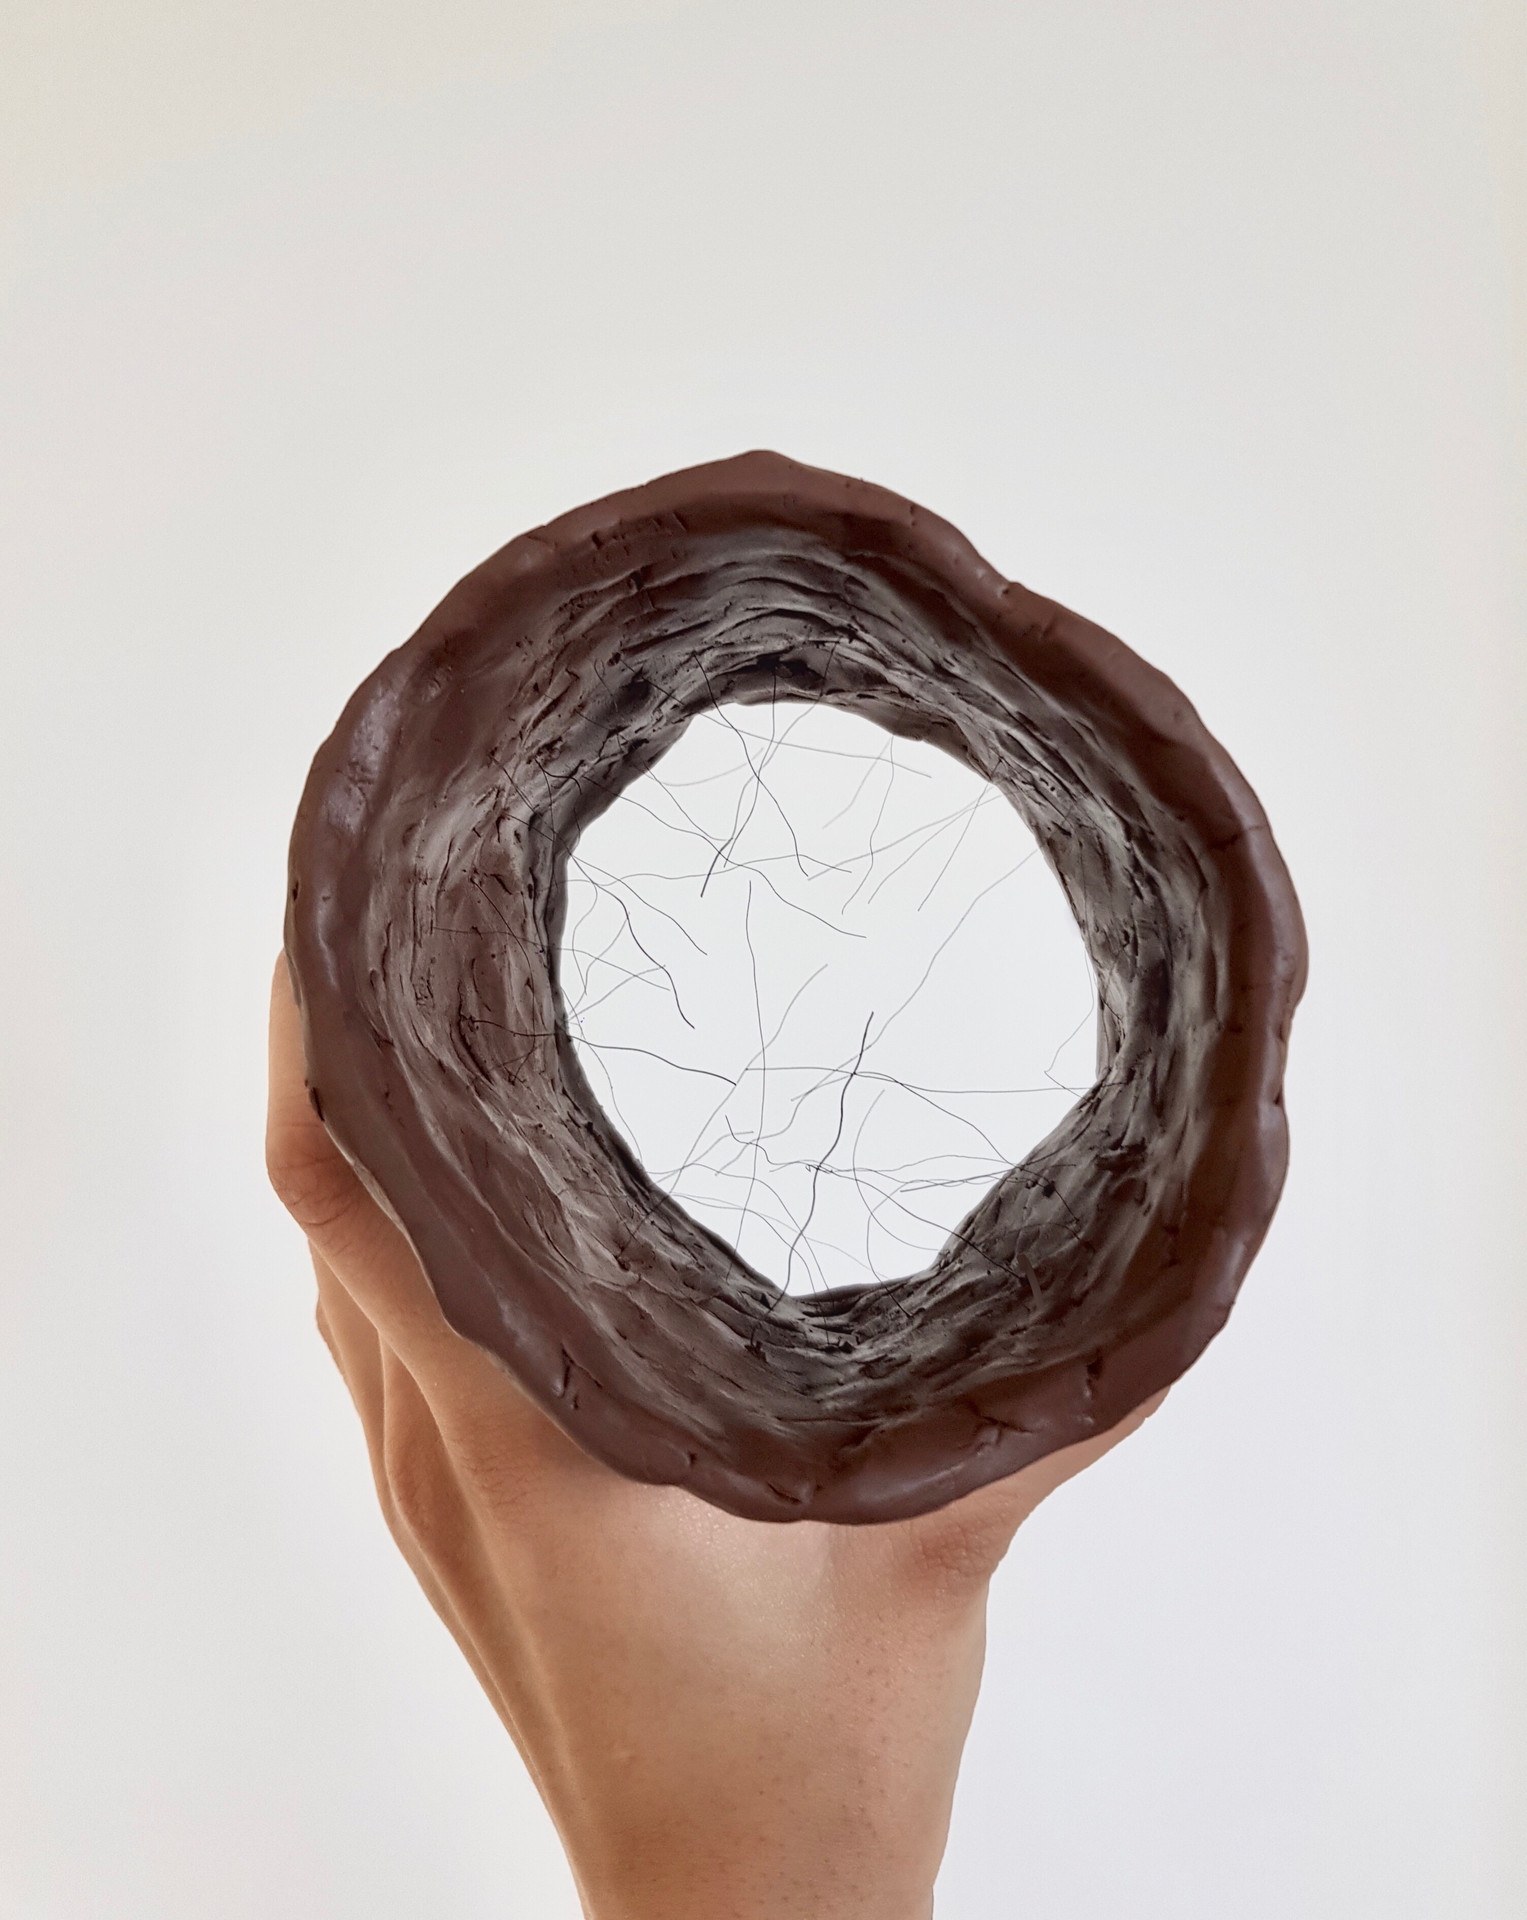 Would you put your hand in?, 2019 (clay, fake hair)